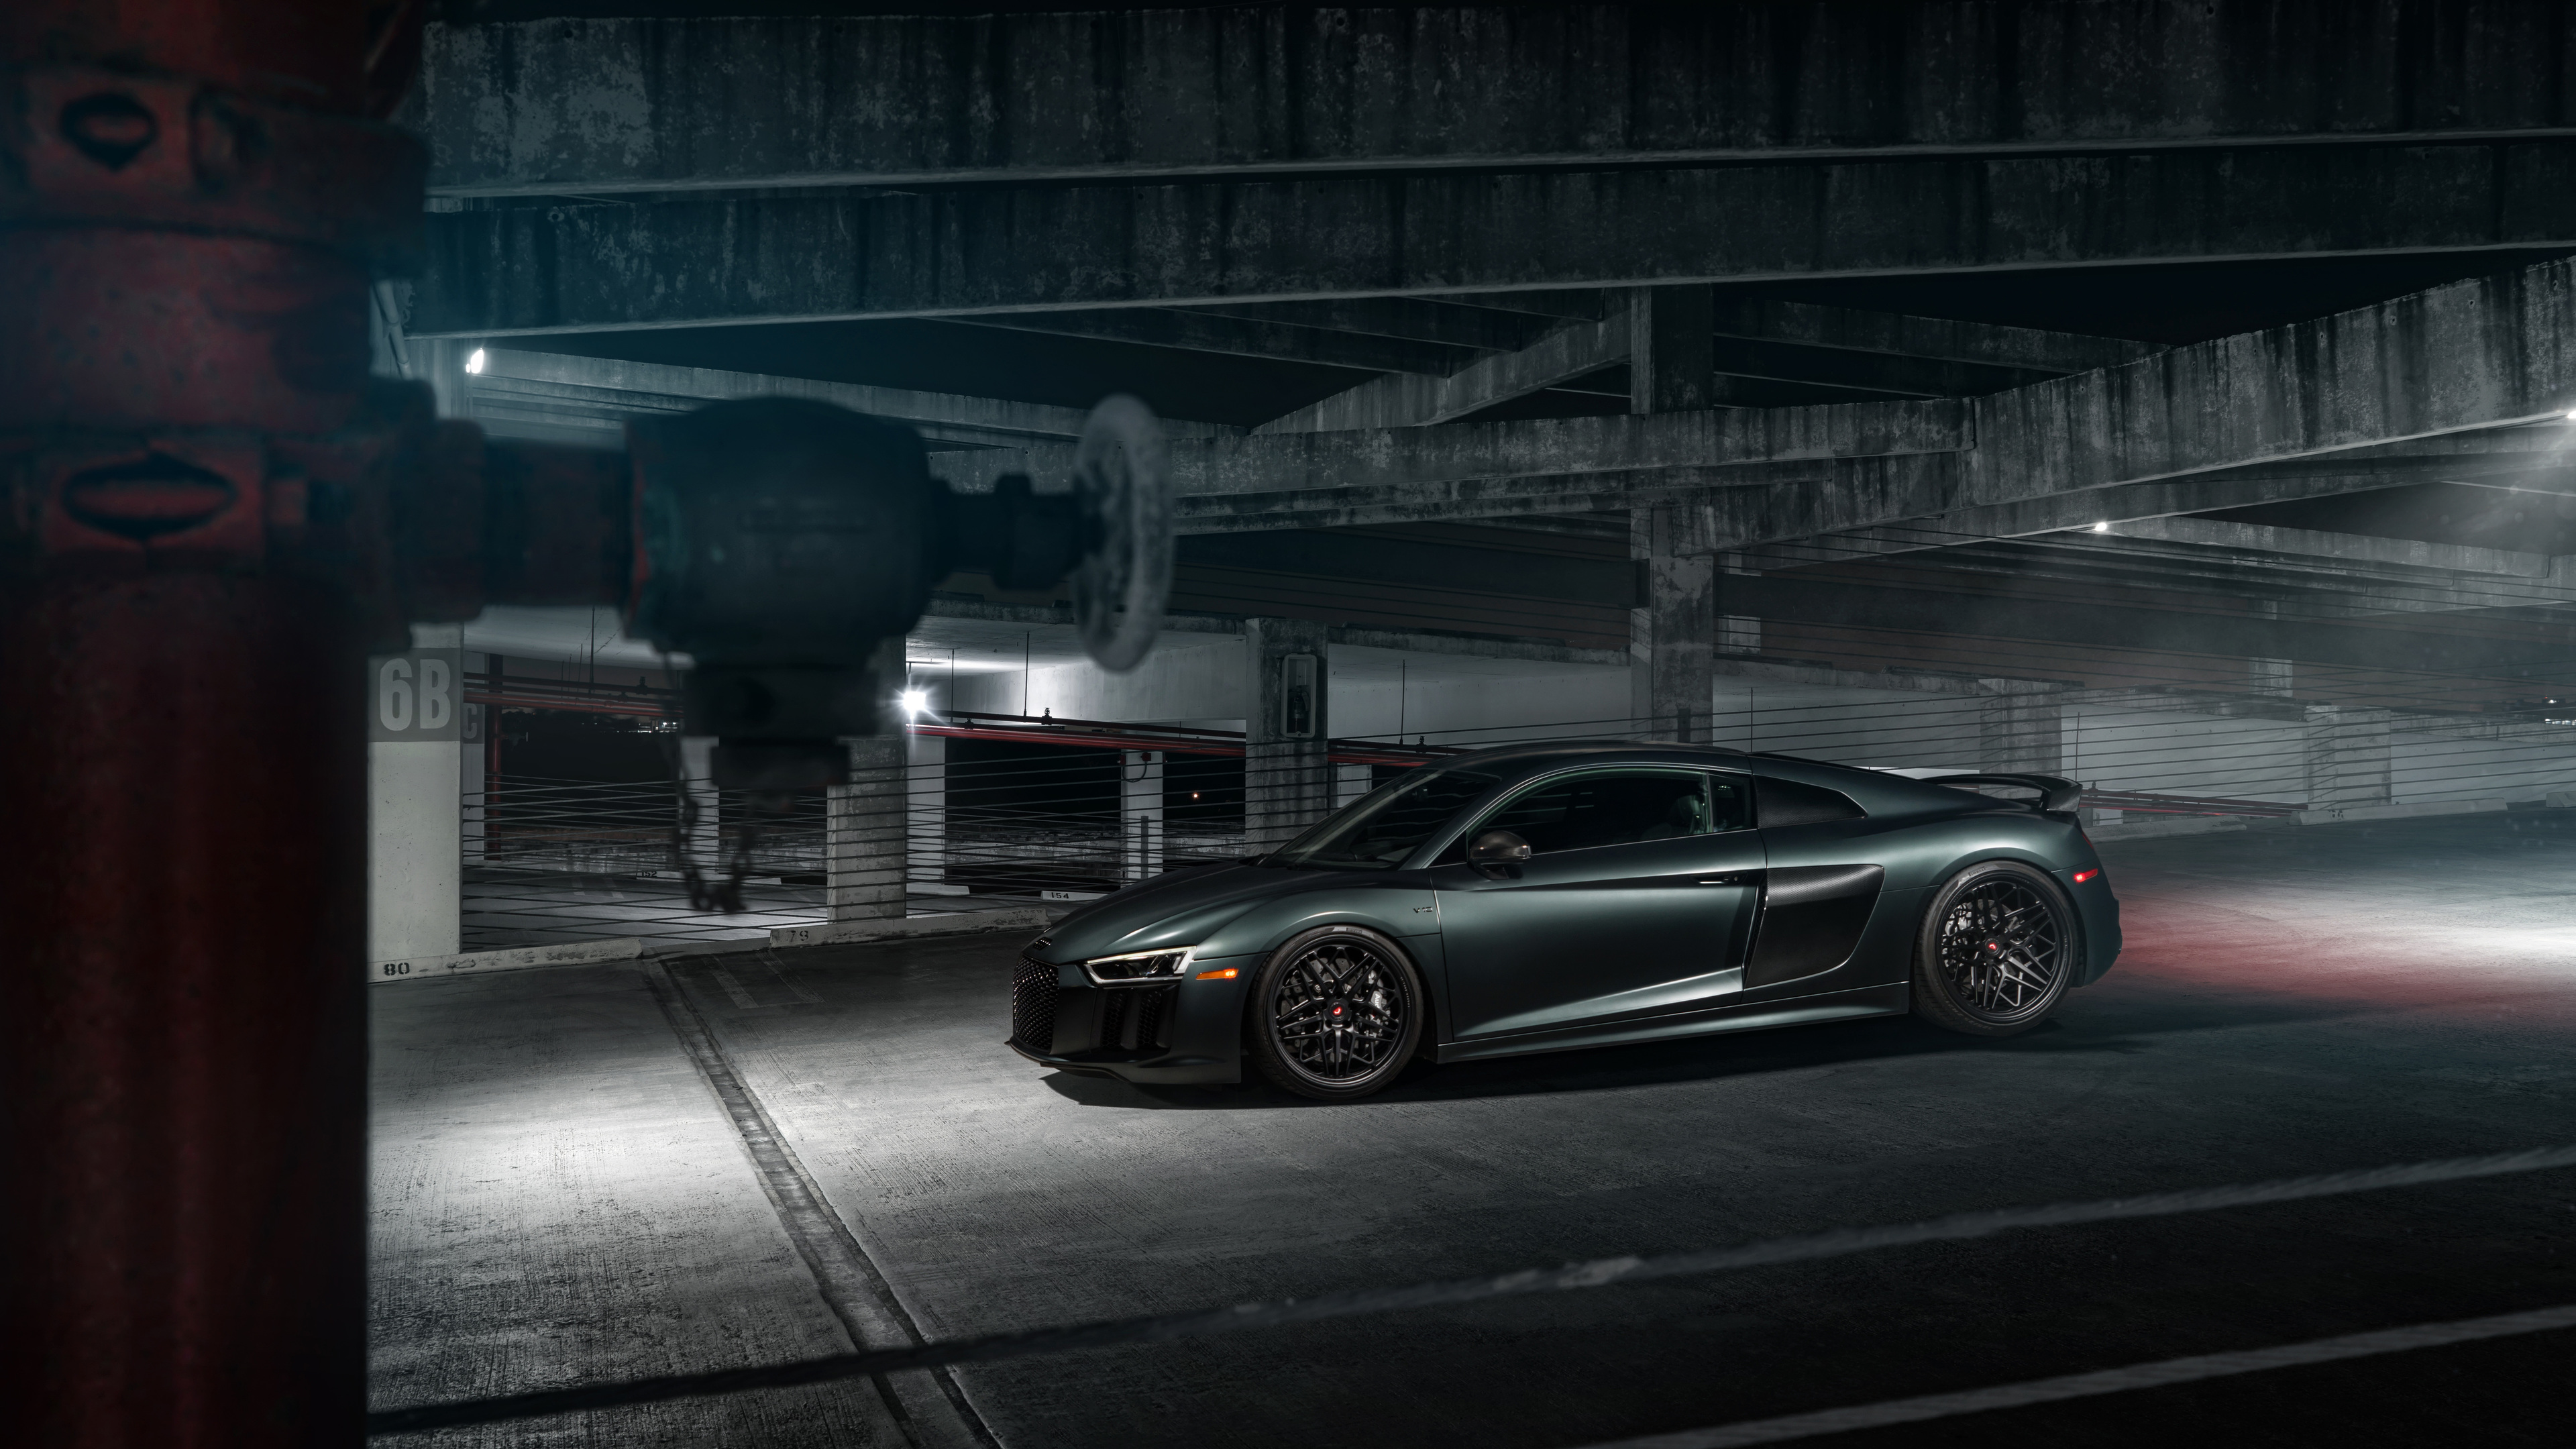 Wallpaper 4k Vossen Green Audi R8 4k 2019 Cars Wallpapers 4k